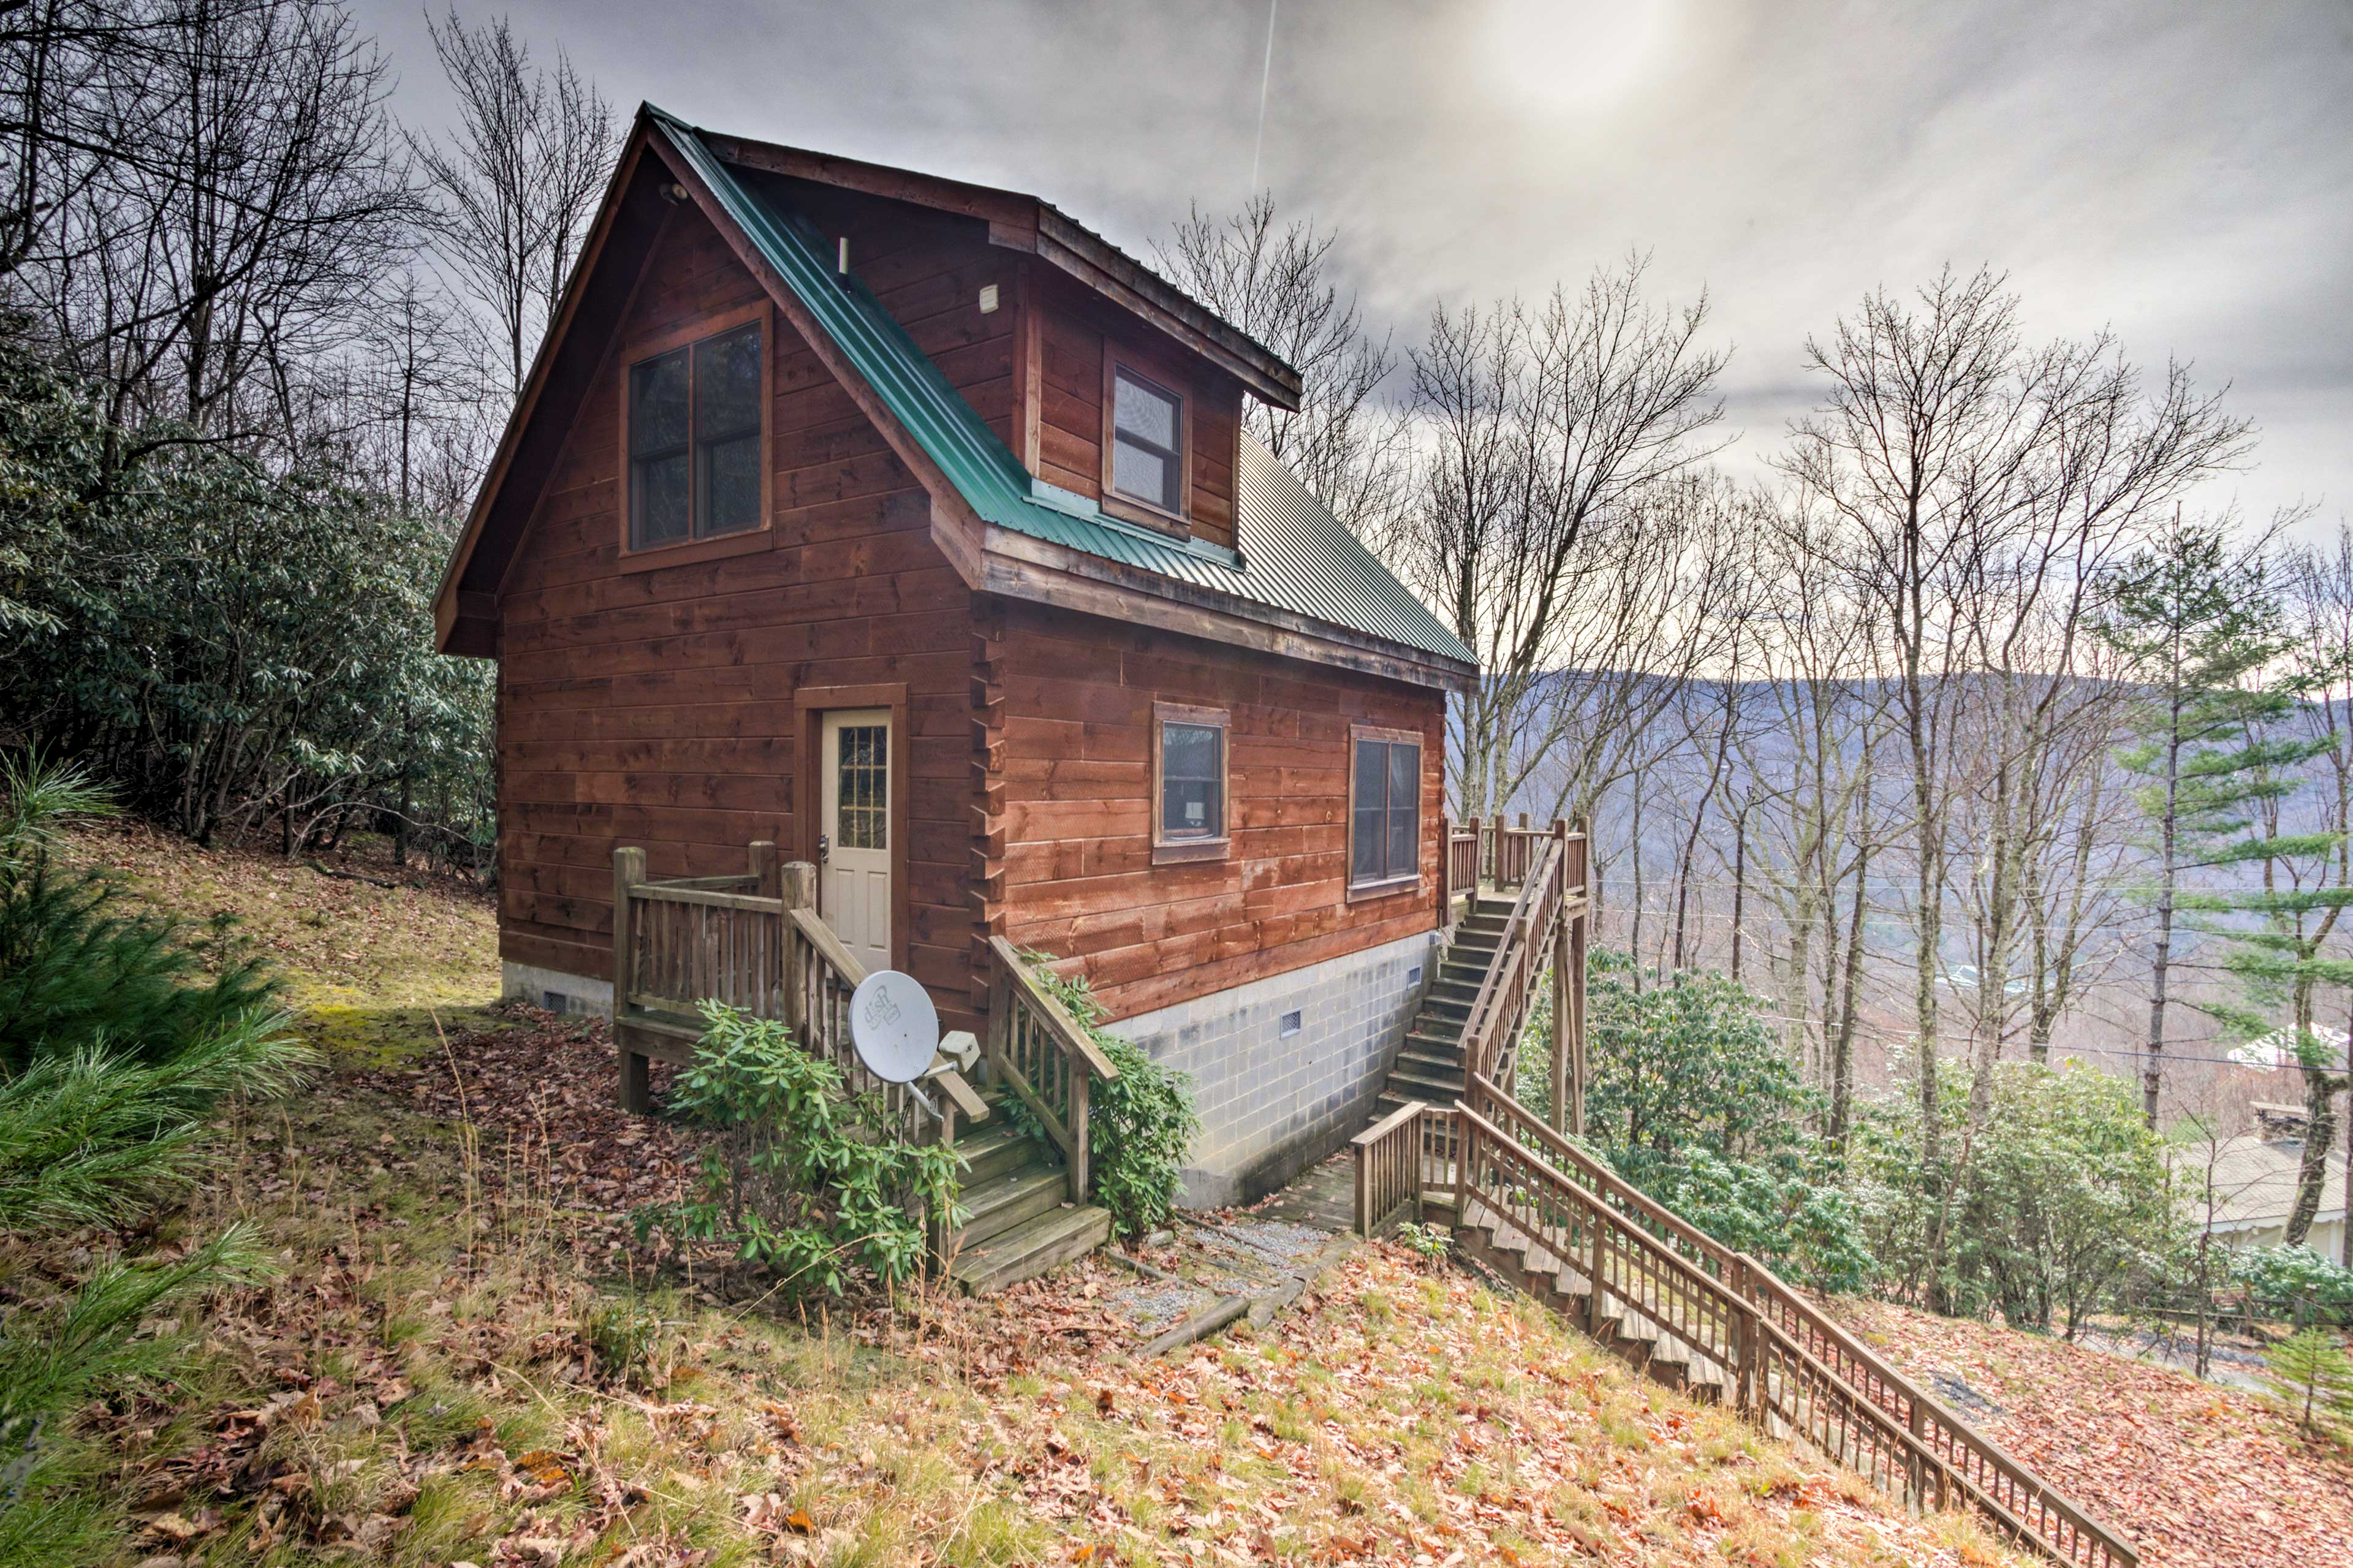 The 2-bedroom, 2-bathroom home accommodates 6 guests in a tranquil setting.